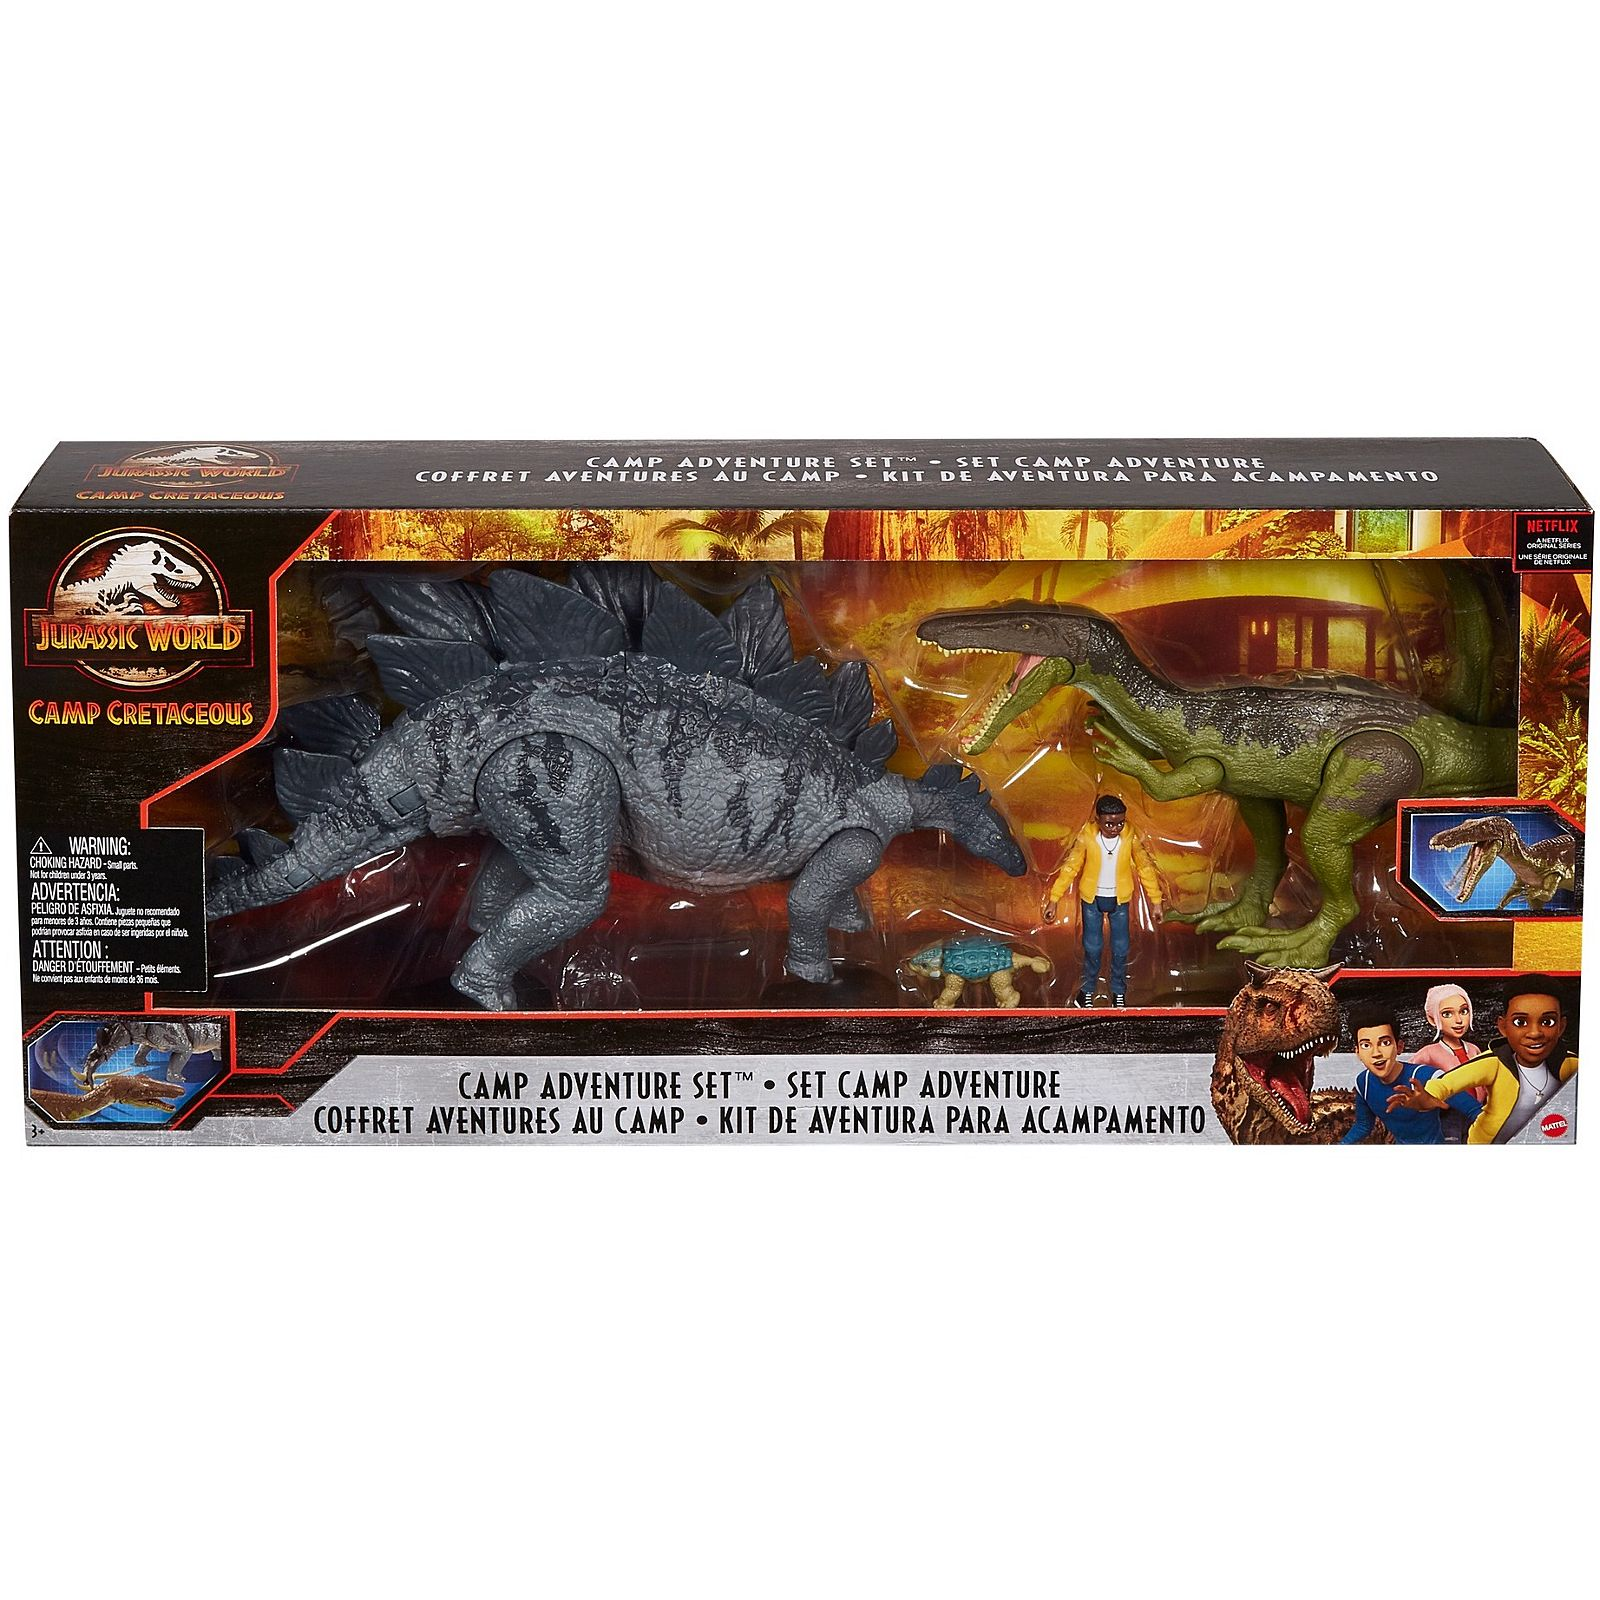 Jurassic World Camp Cretaceous Camp Adventure Set Revealed Collect Jurassic Camp cretaceous, six teenagers at the new adventure camp at jurassic world are stranded and must band together to survive on the opposite side of isla nub. jurassic world camp cretaceous camp